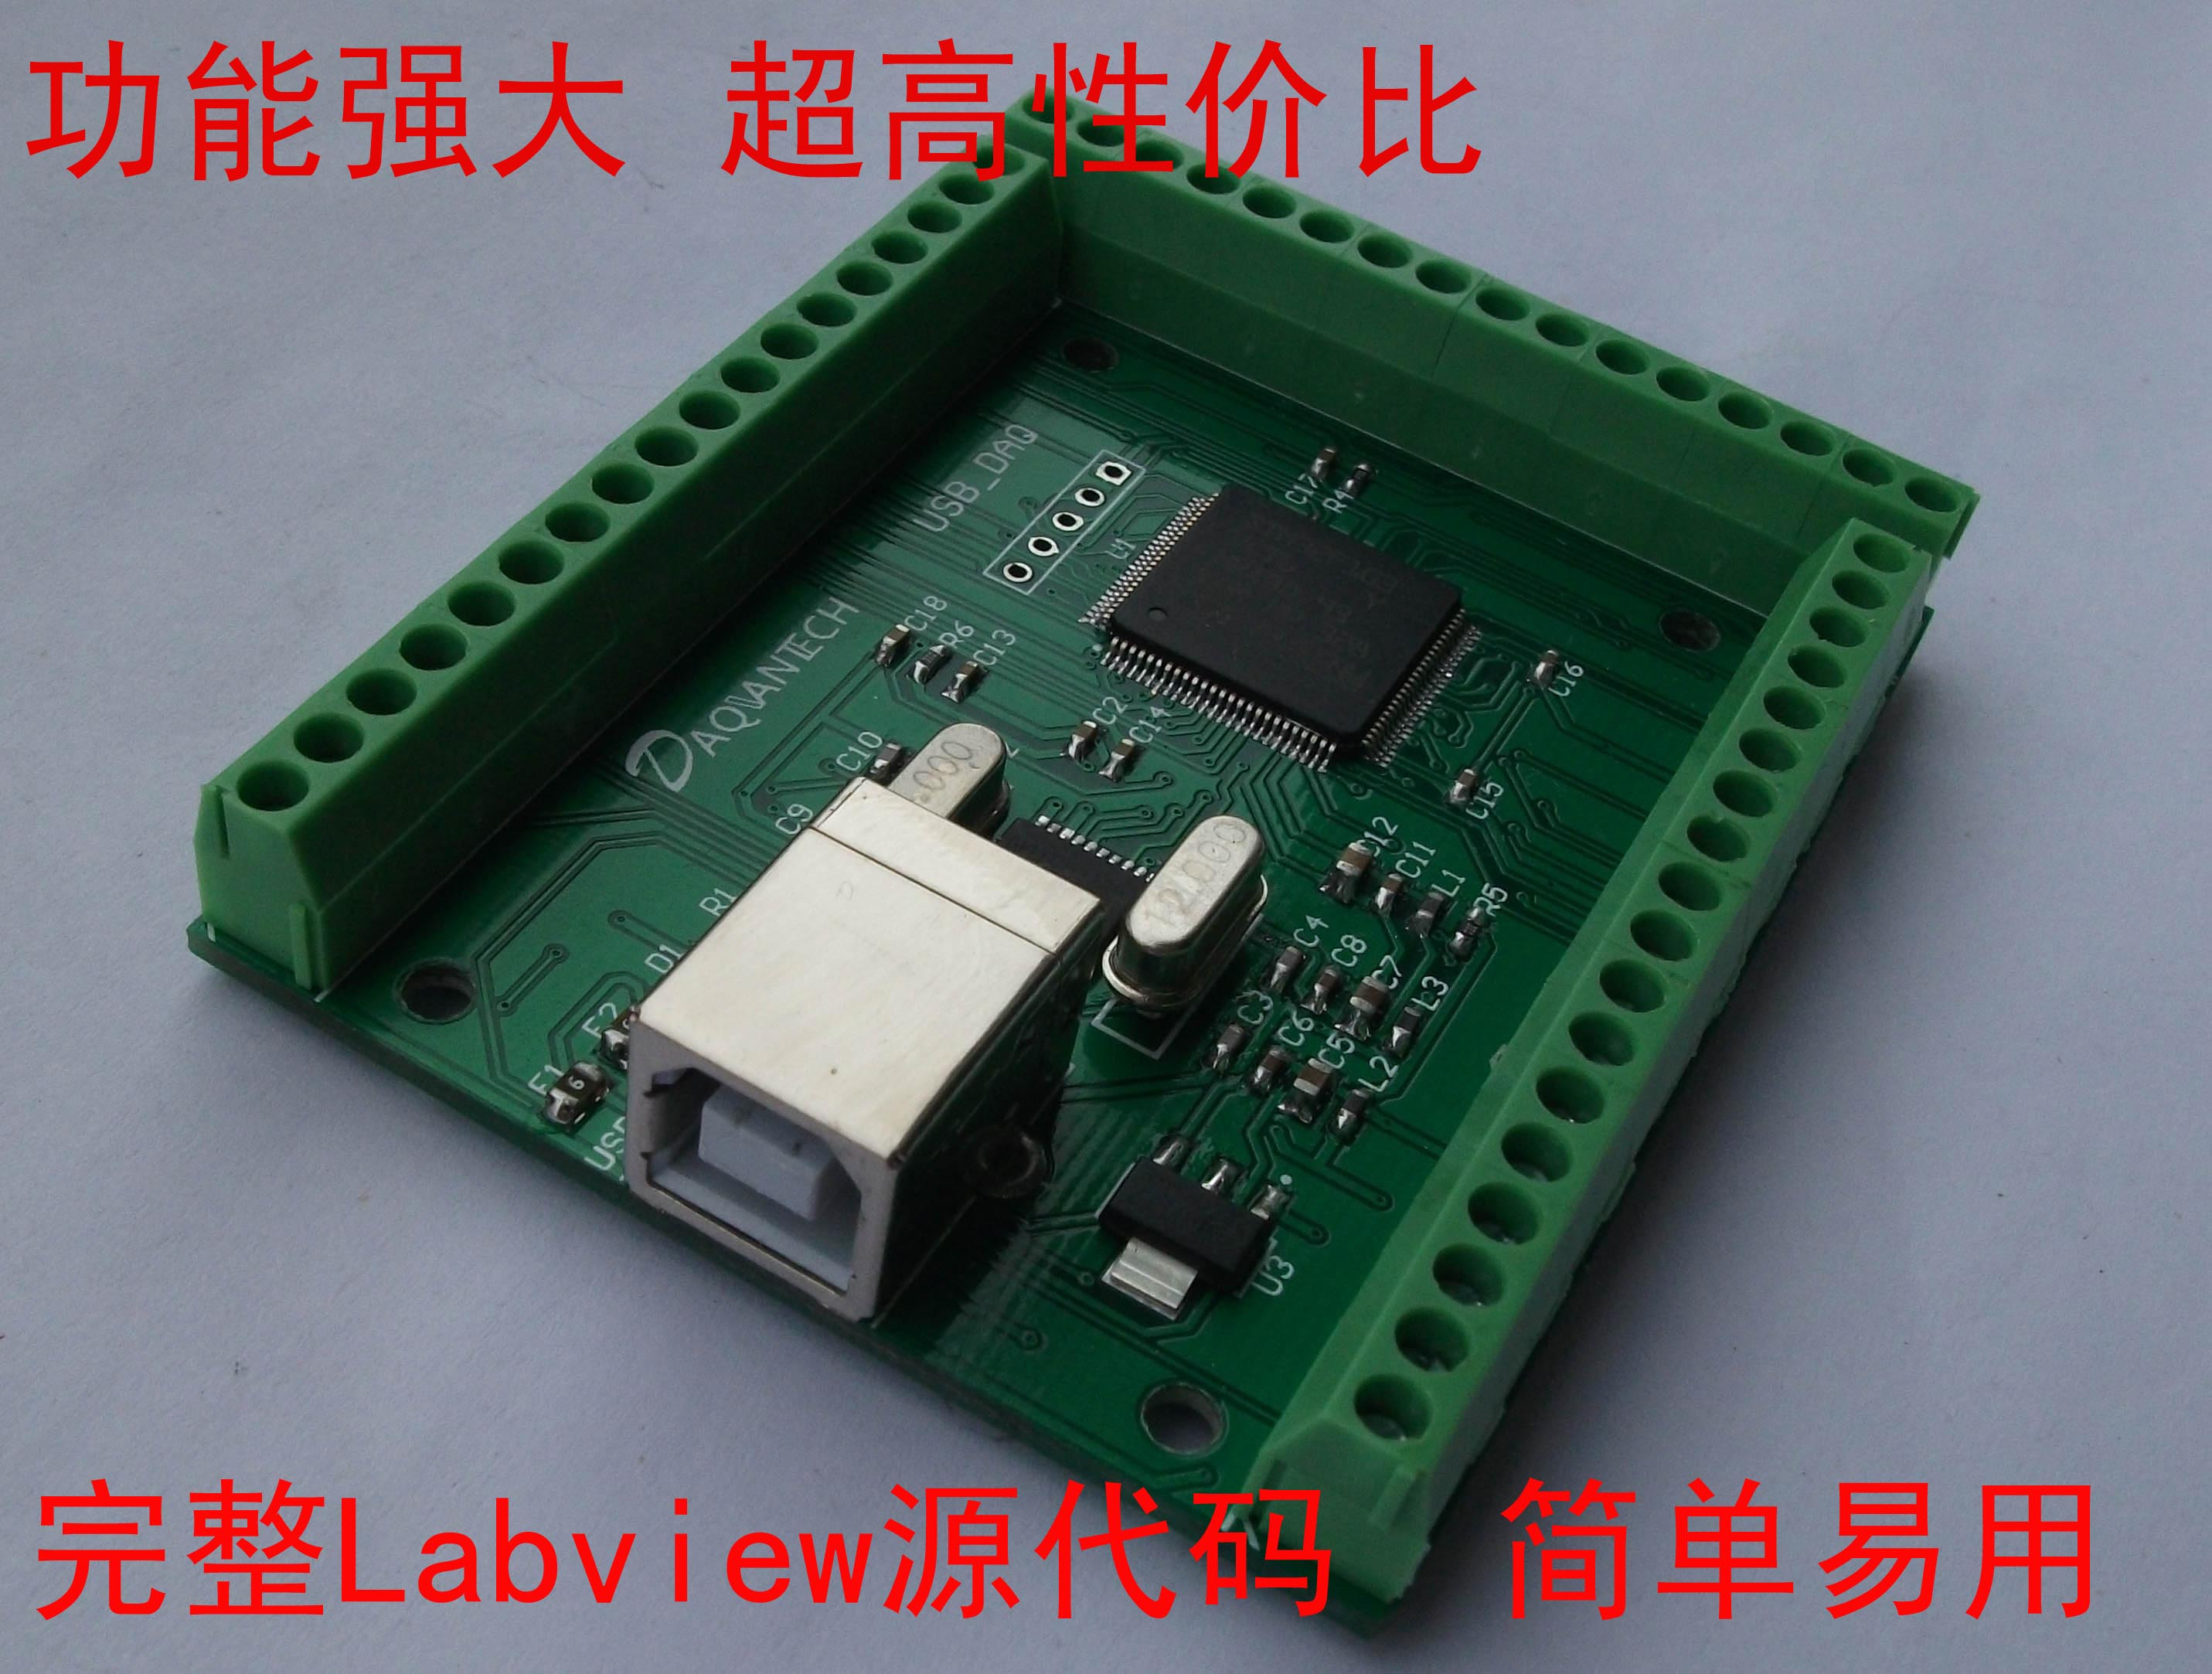 USB Data Acquisition Card 12 Road 12 Bit AD 2 Road DA 2 PWM 16 Road DIO Labview